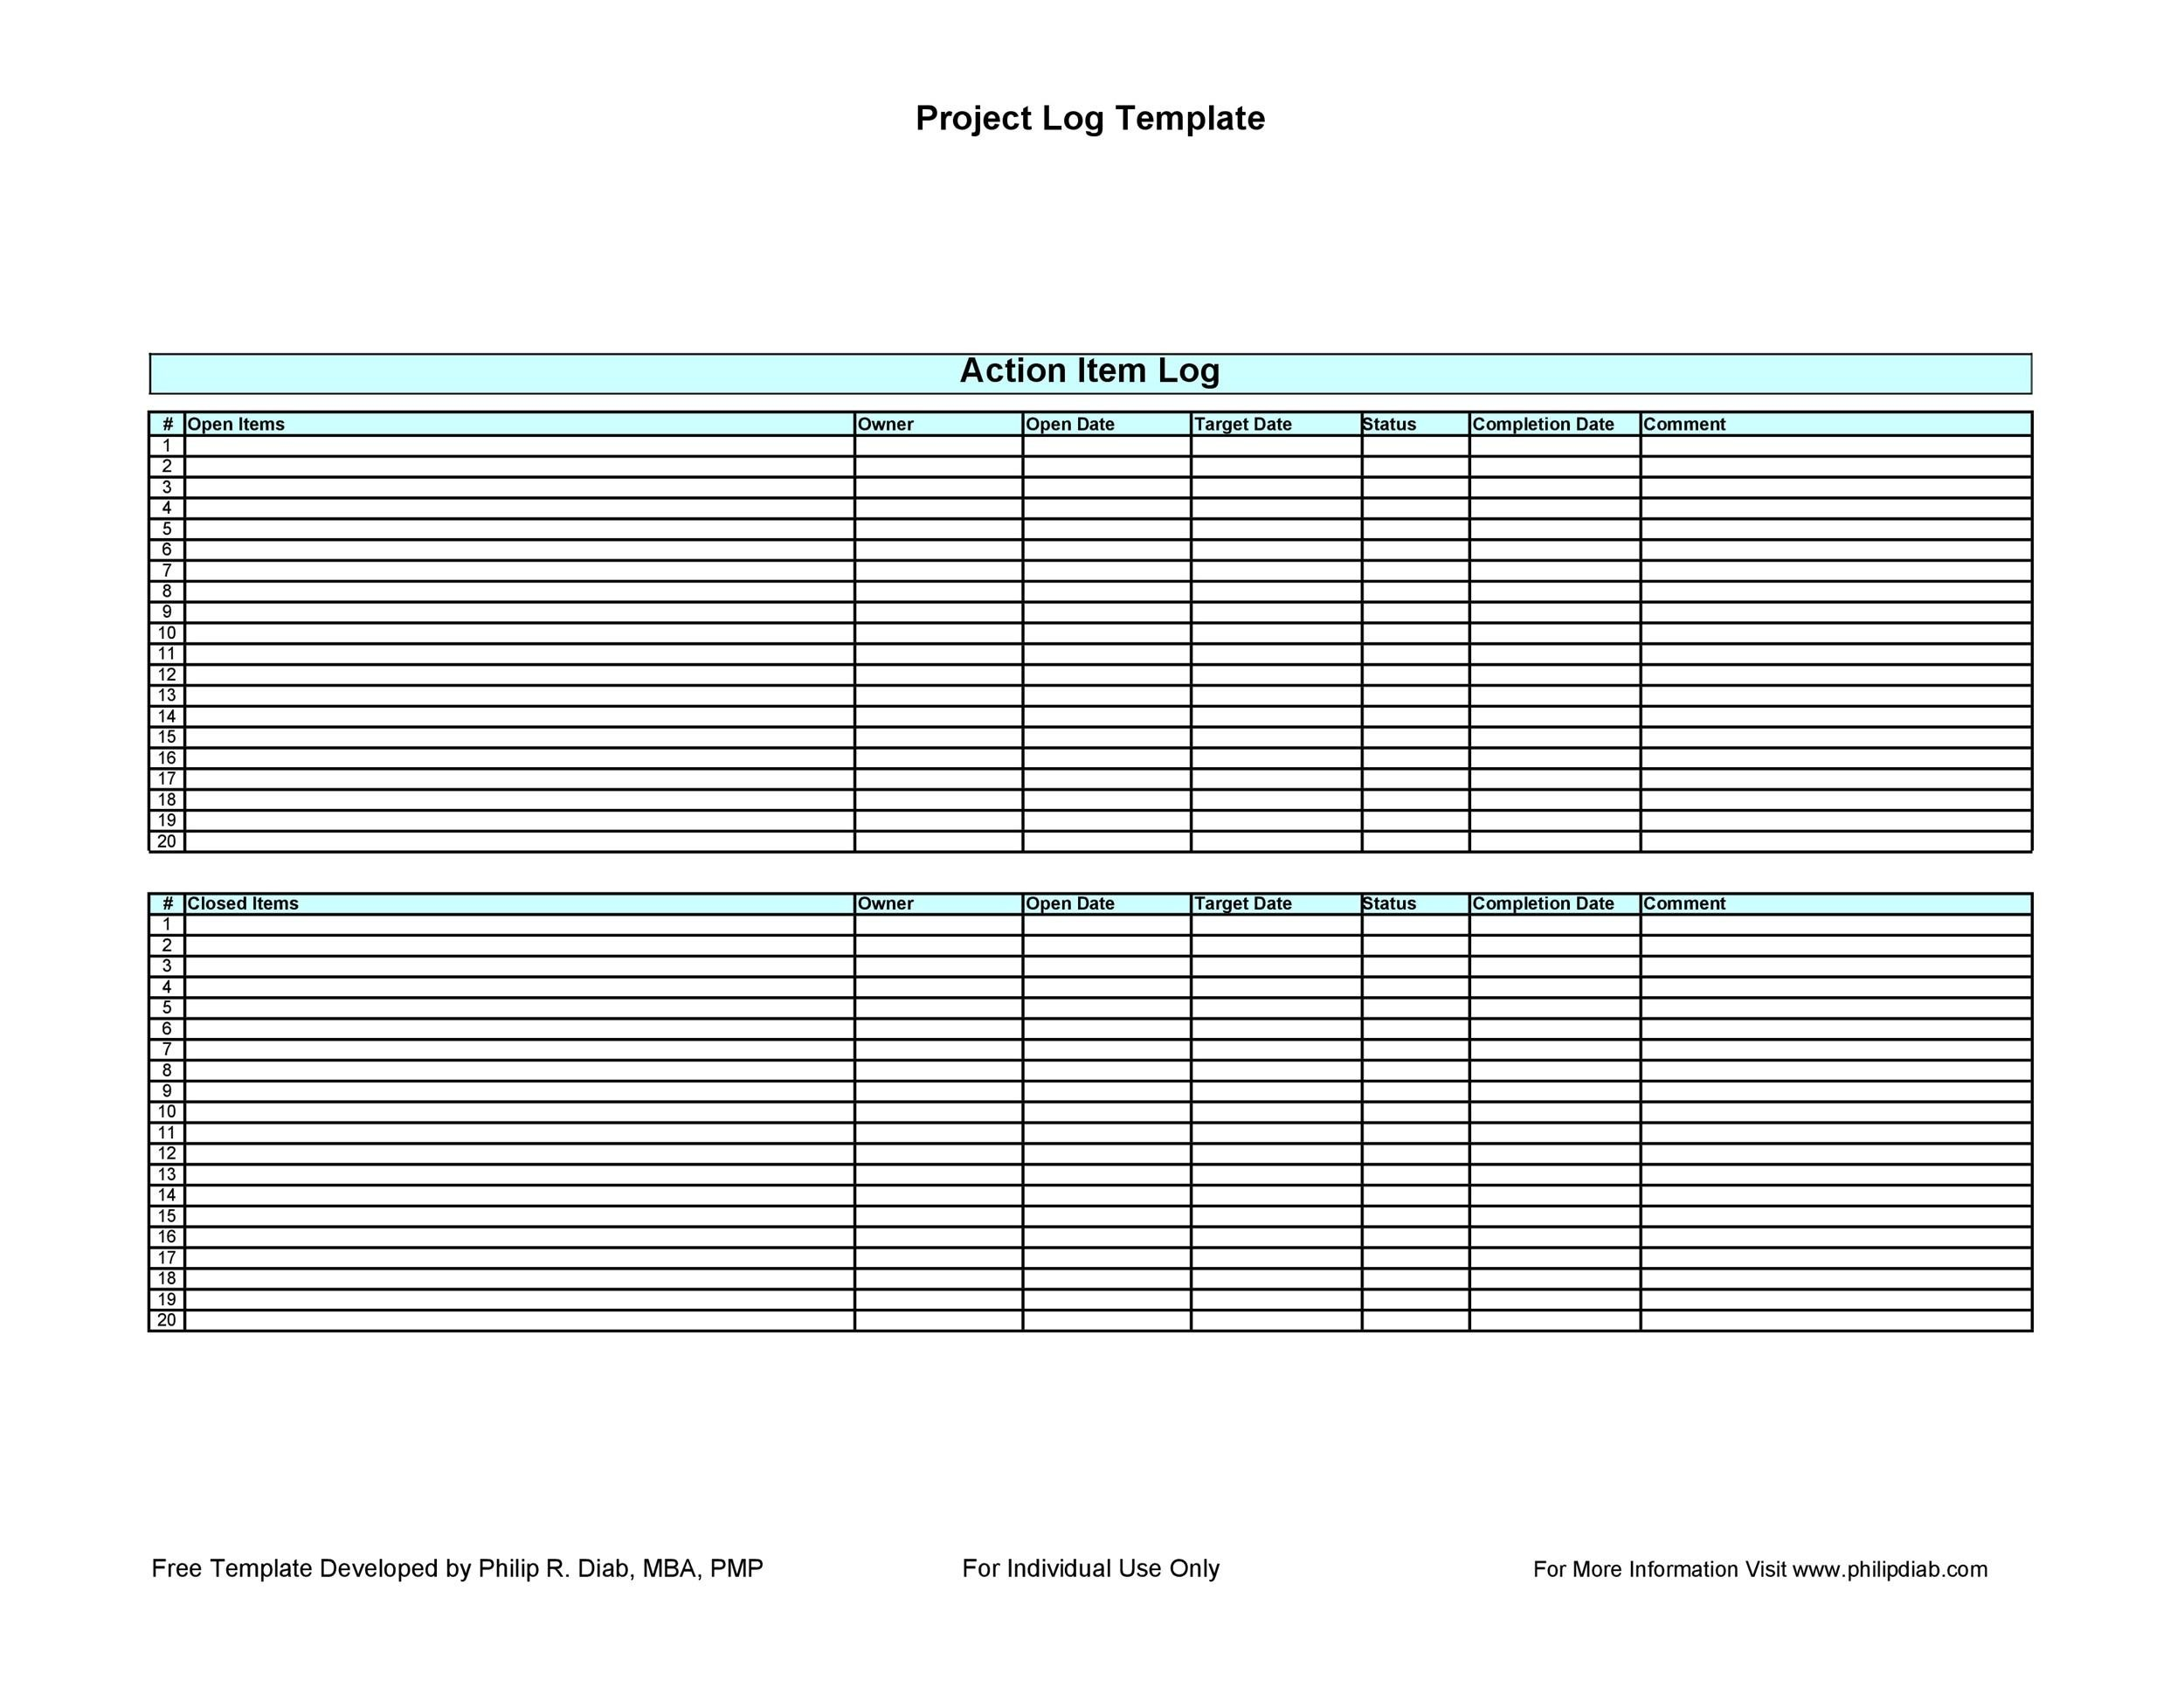 Free action items template 22